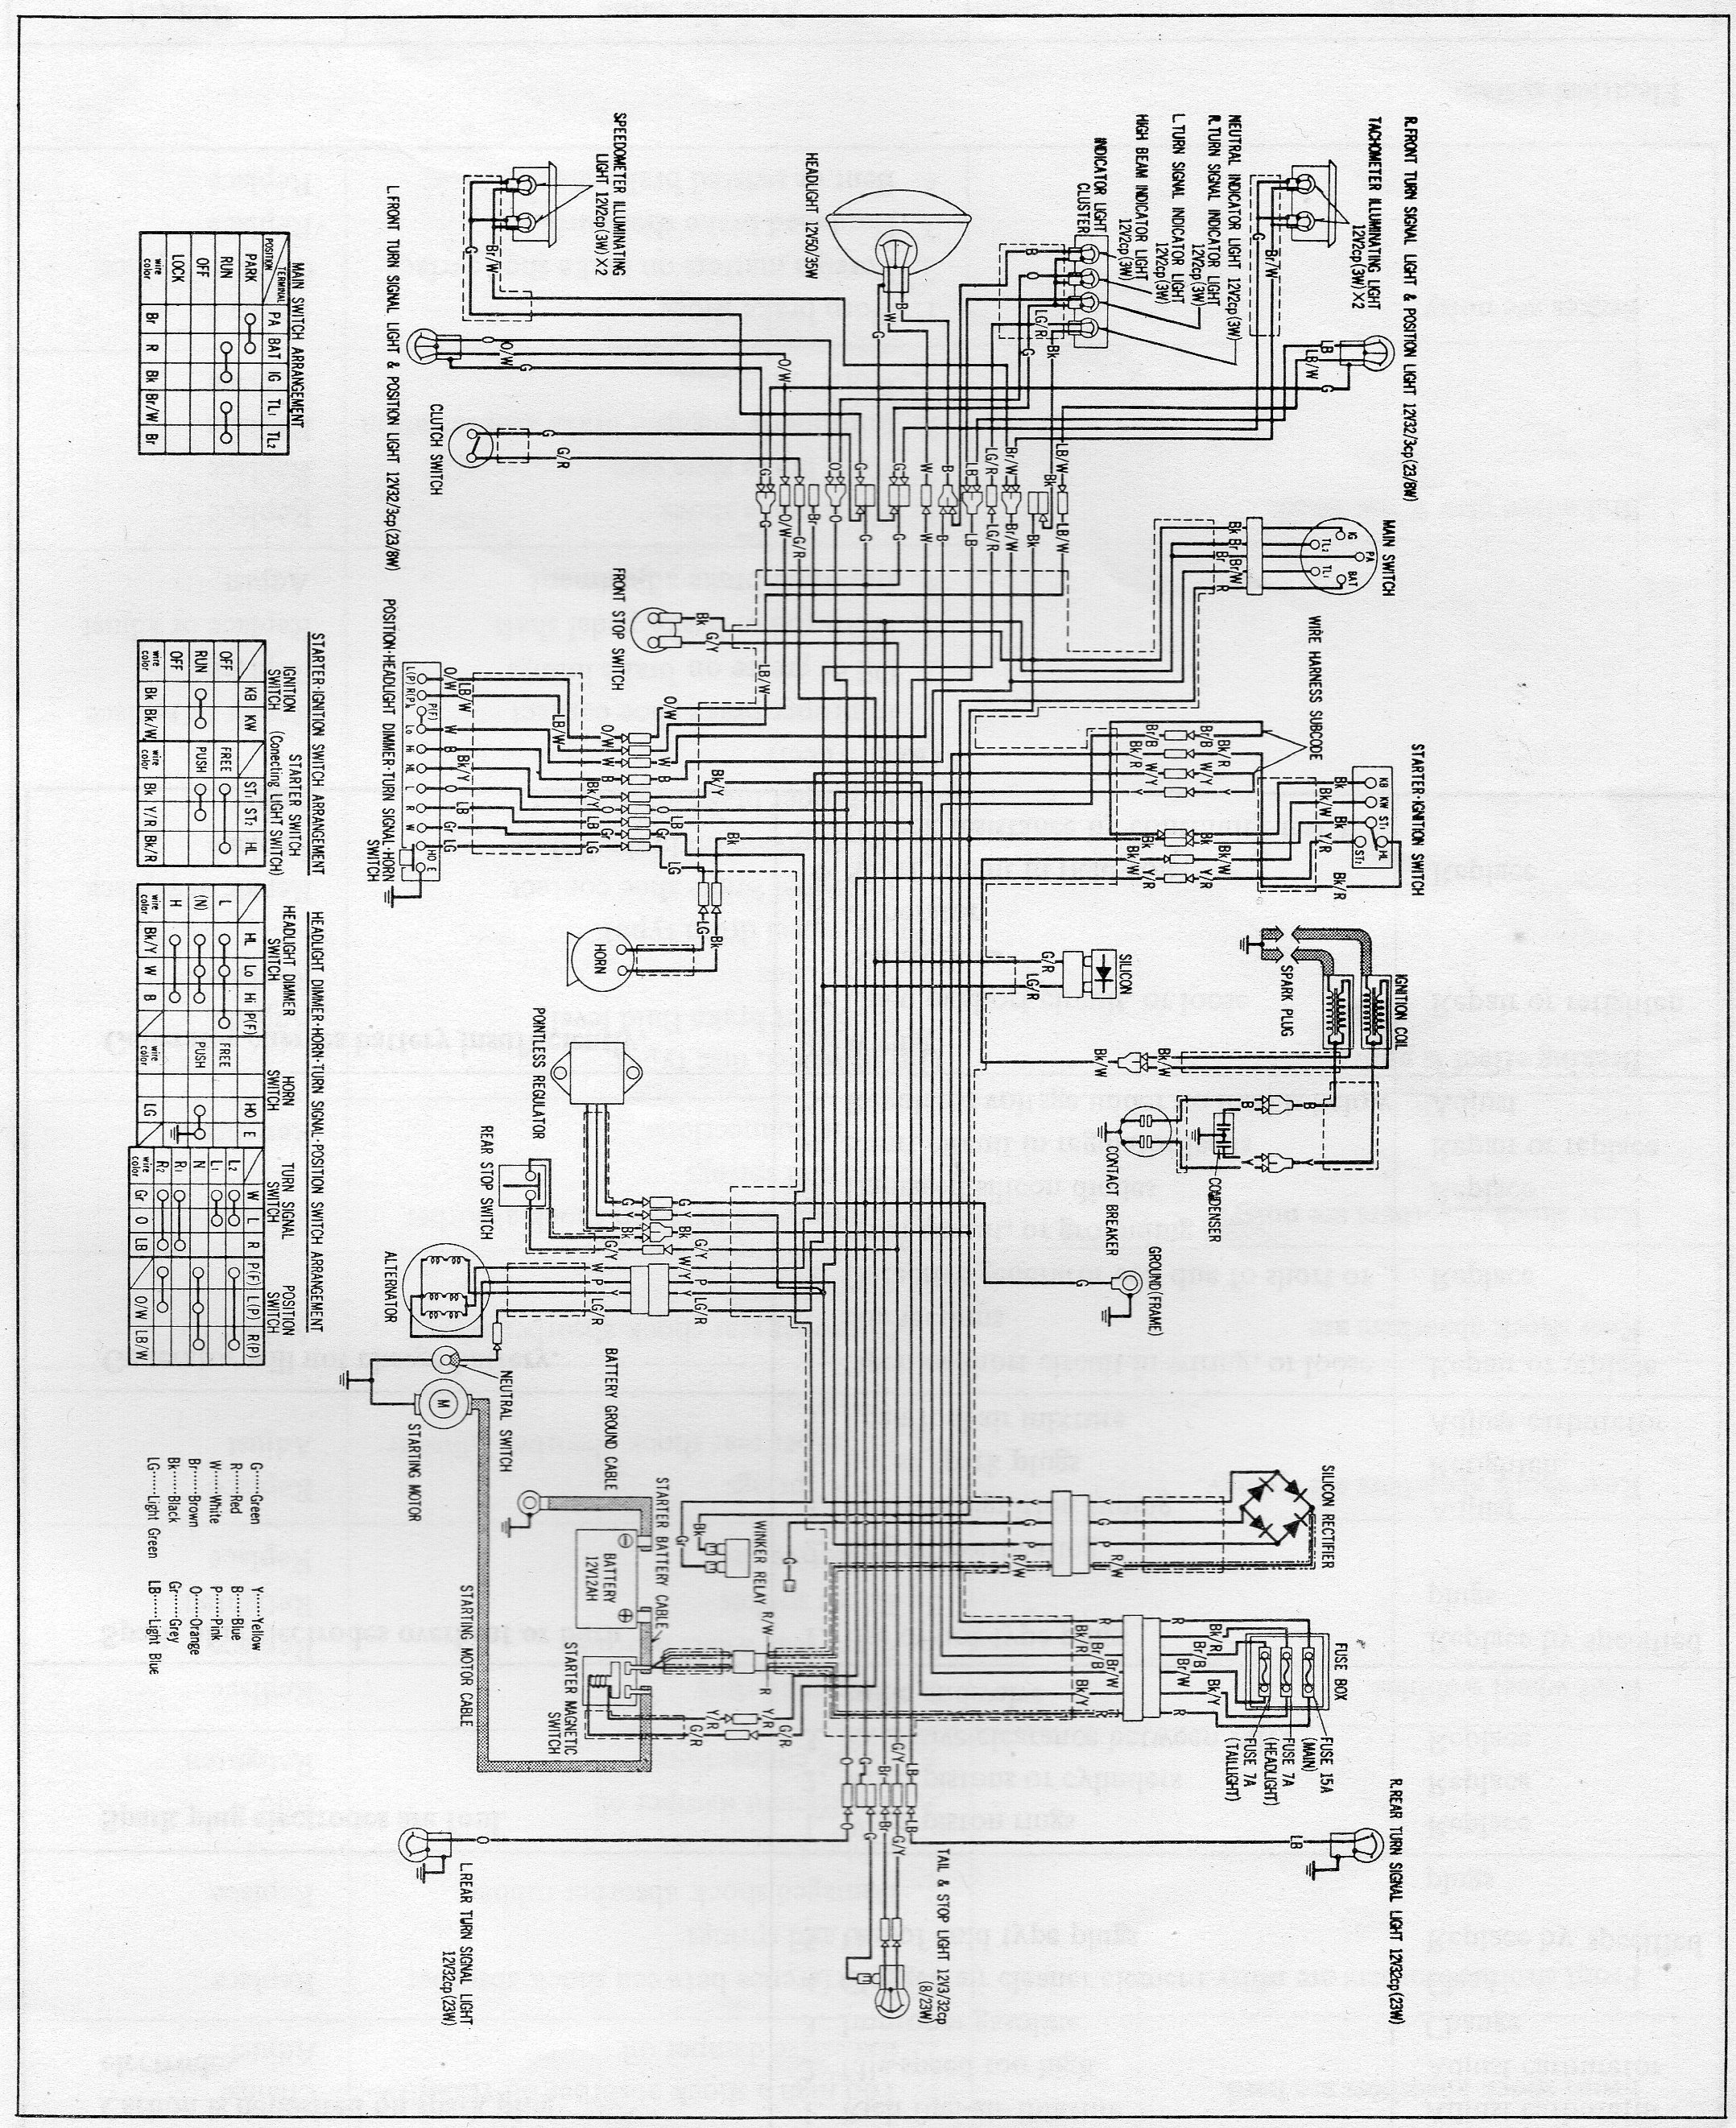 DIAGRAM] Wiring Diagram Wiring Diagram FULL Version HD Quality Wiring  Diagram - NANOTUBEWIRING.FOCALE3.FRnanotubewiring.focale3.fr